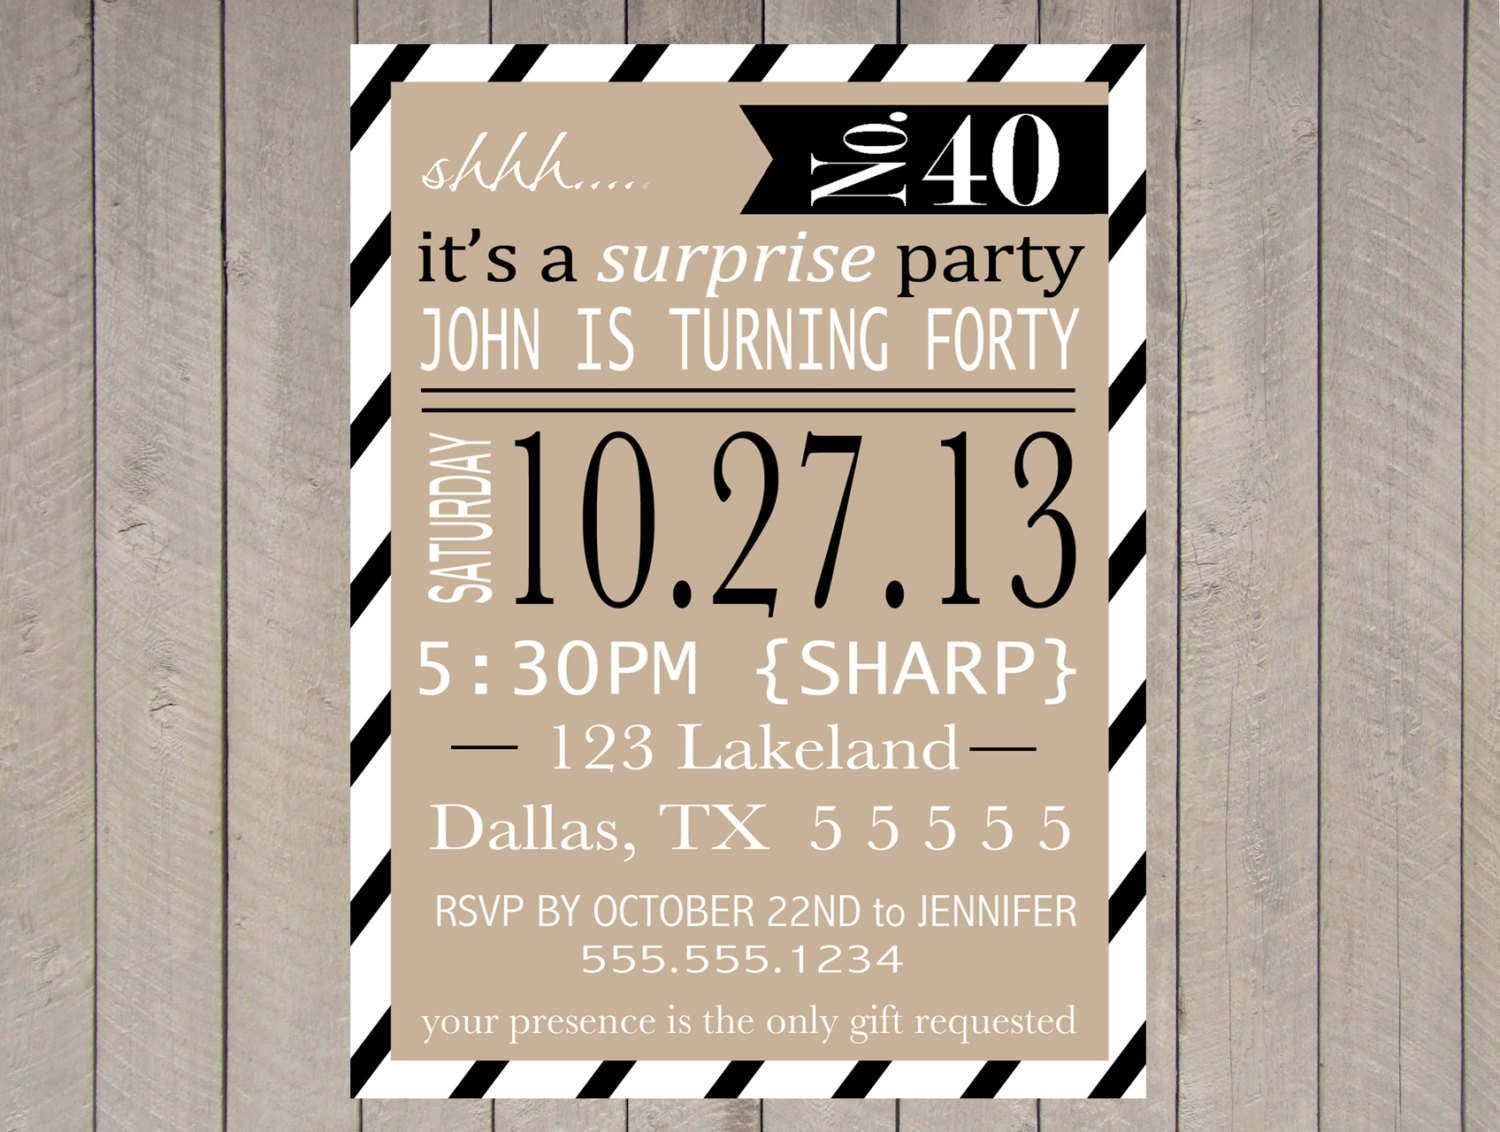 Free Printable Surprise Party Invitation Templates | Invitations - Free Printable Surprise Party Invitation Templates